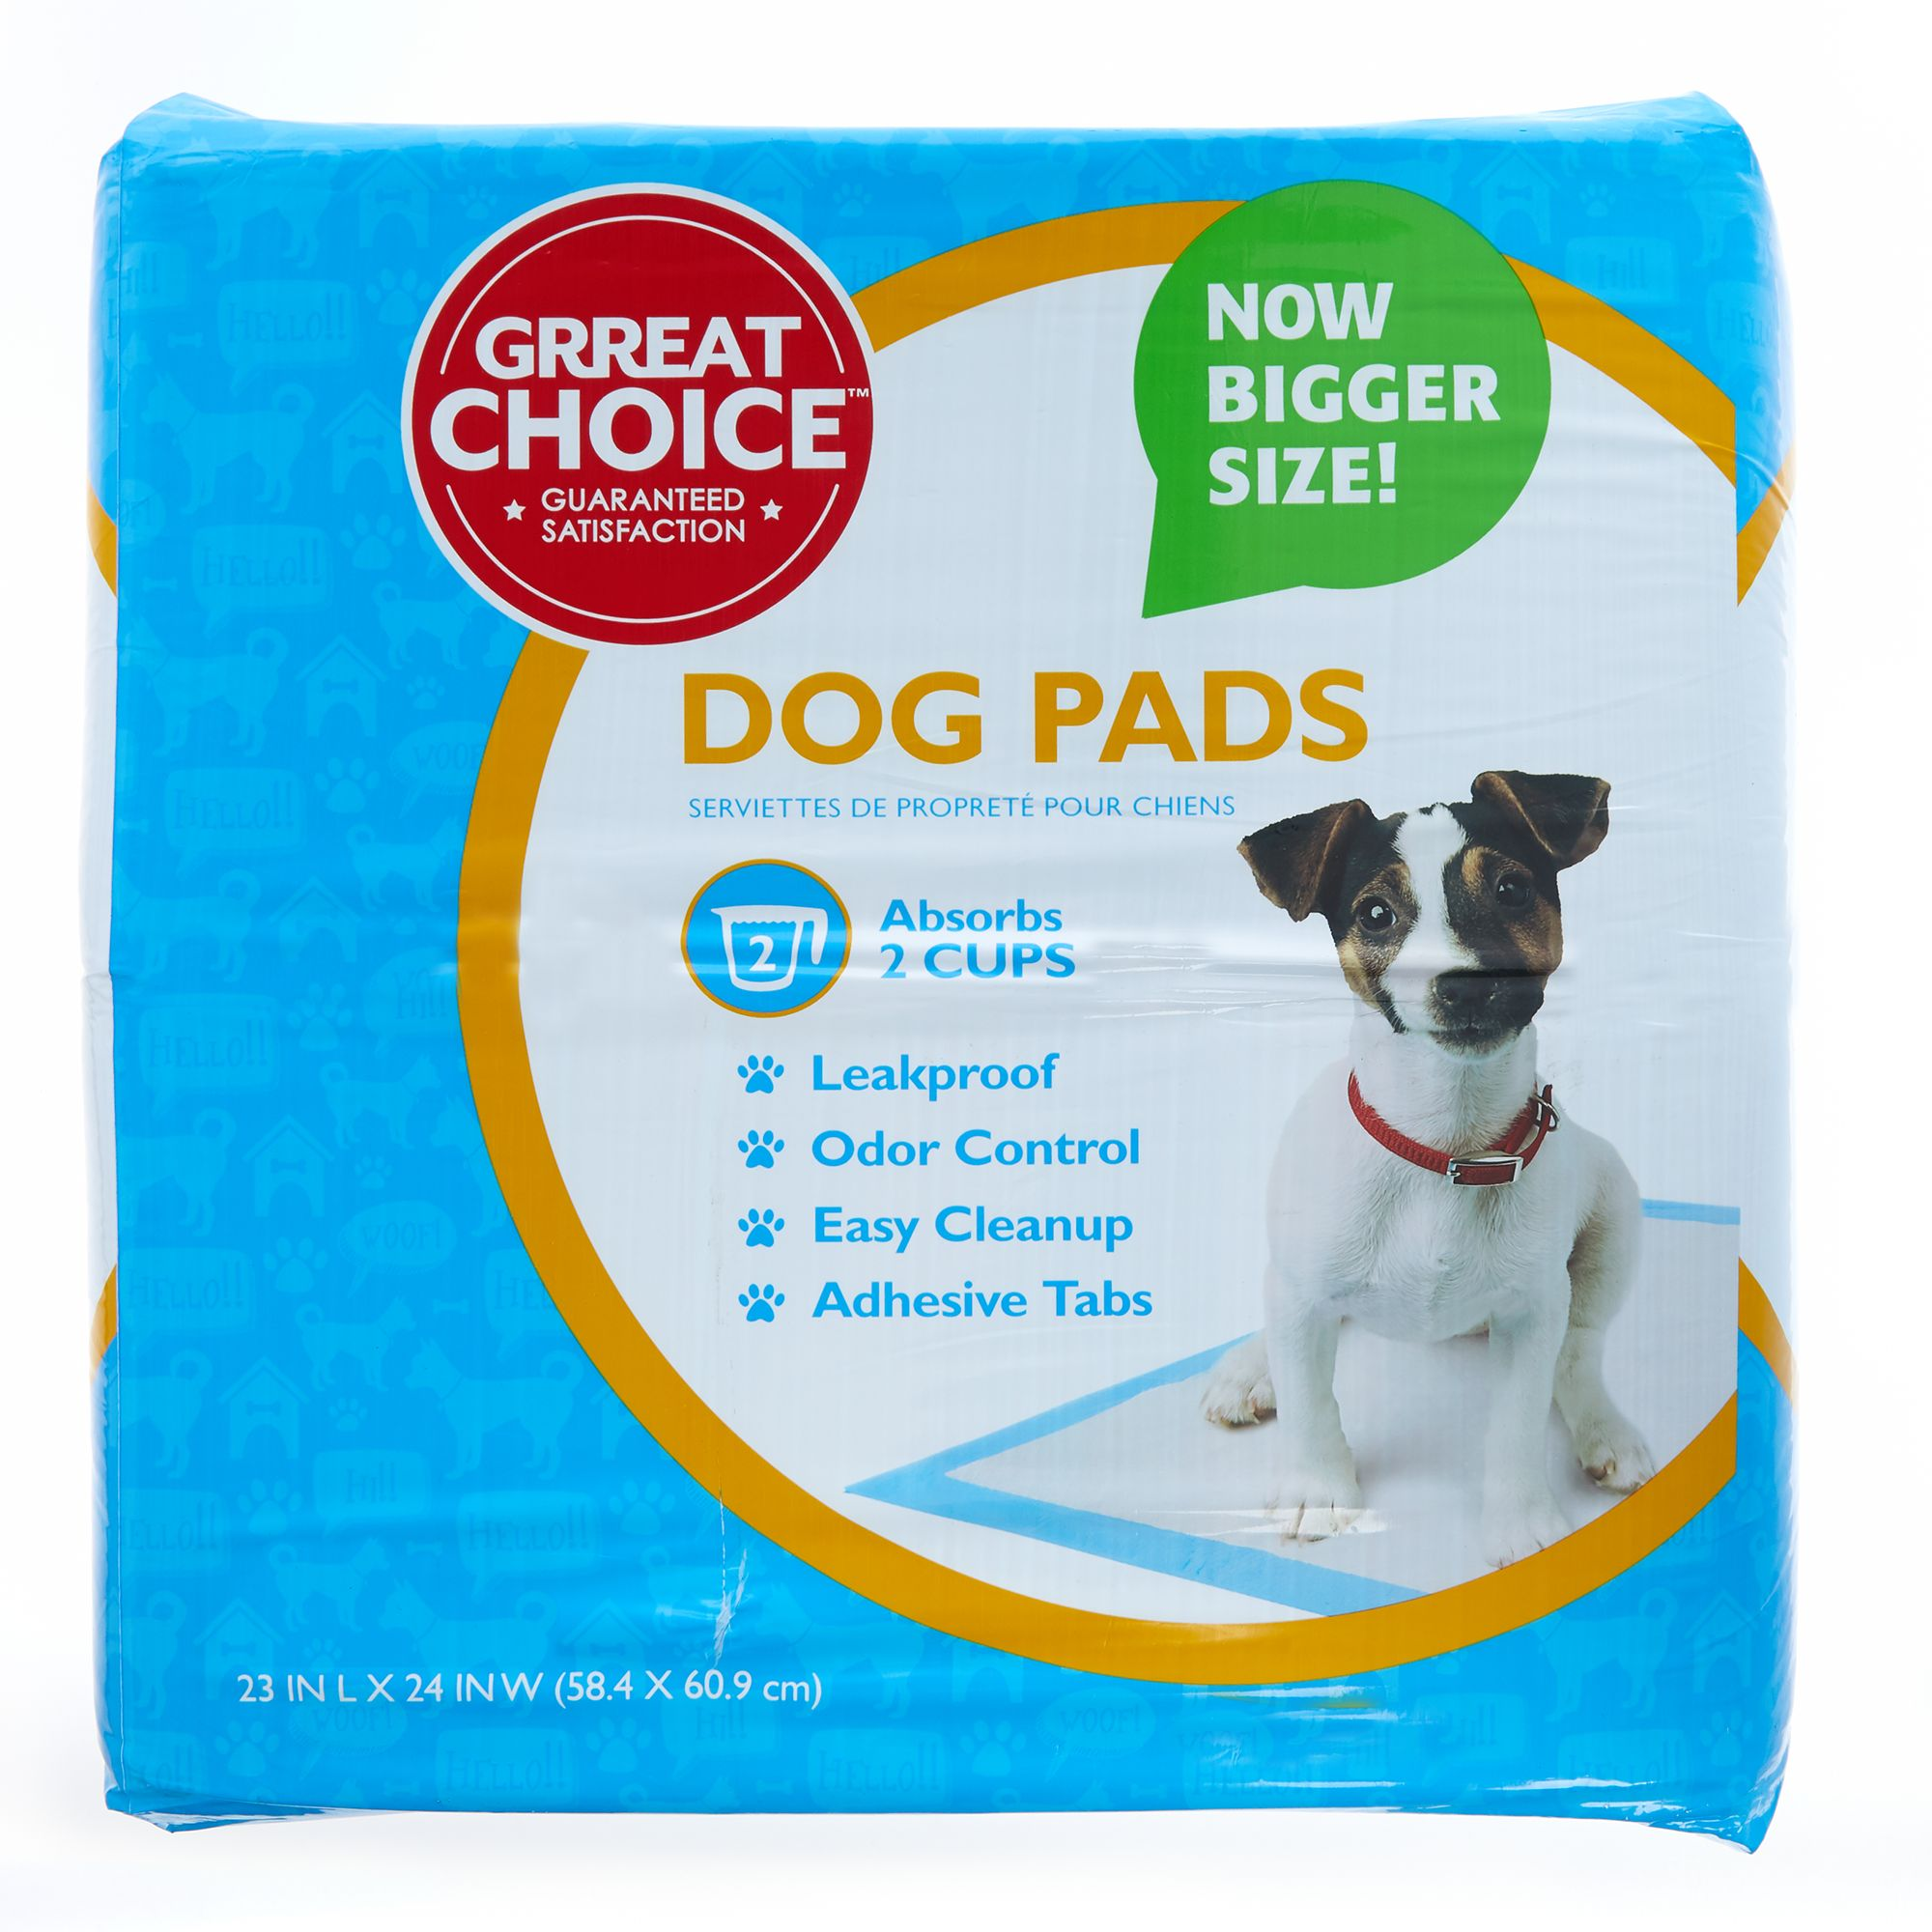 Grreat Choice Dog Pads size: 150 Count